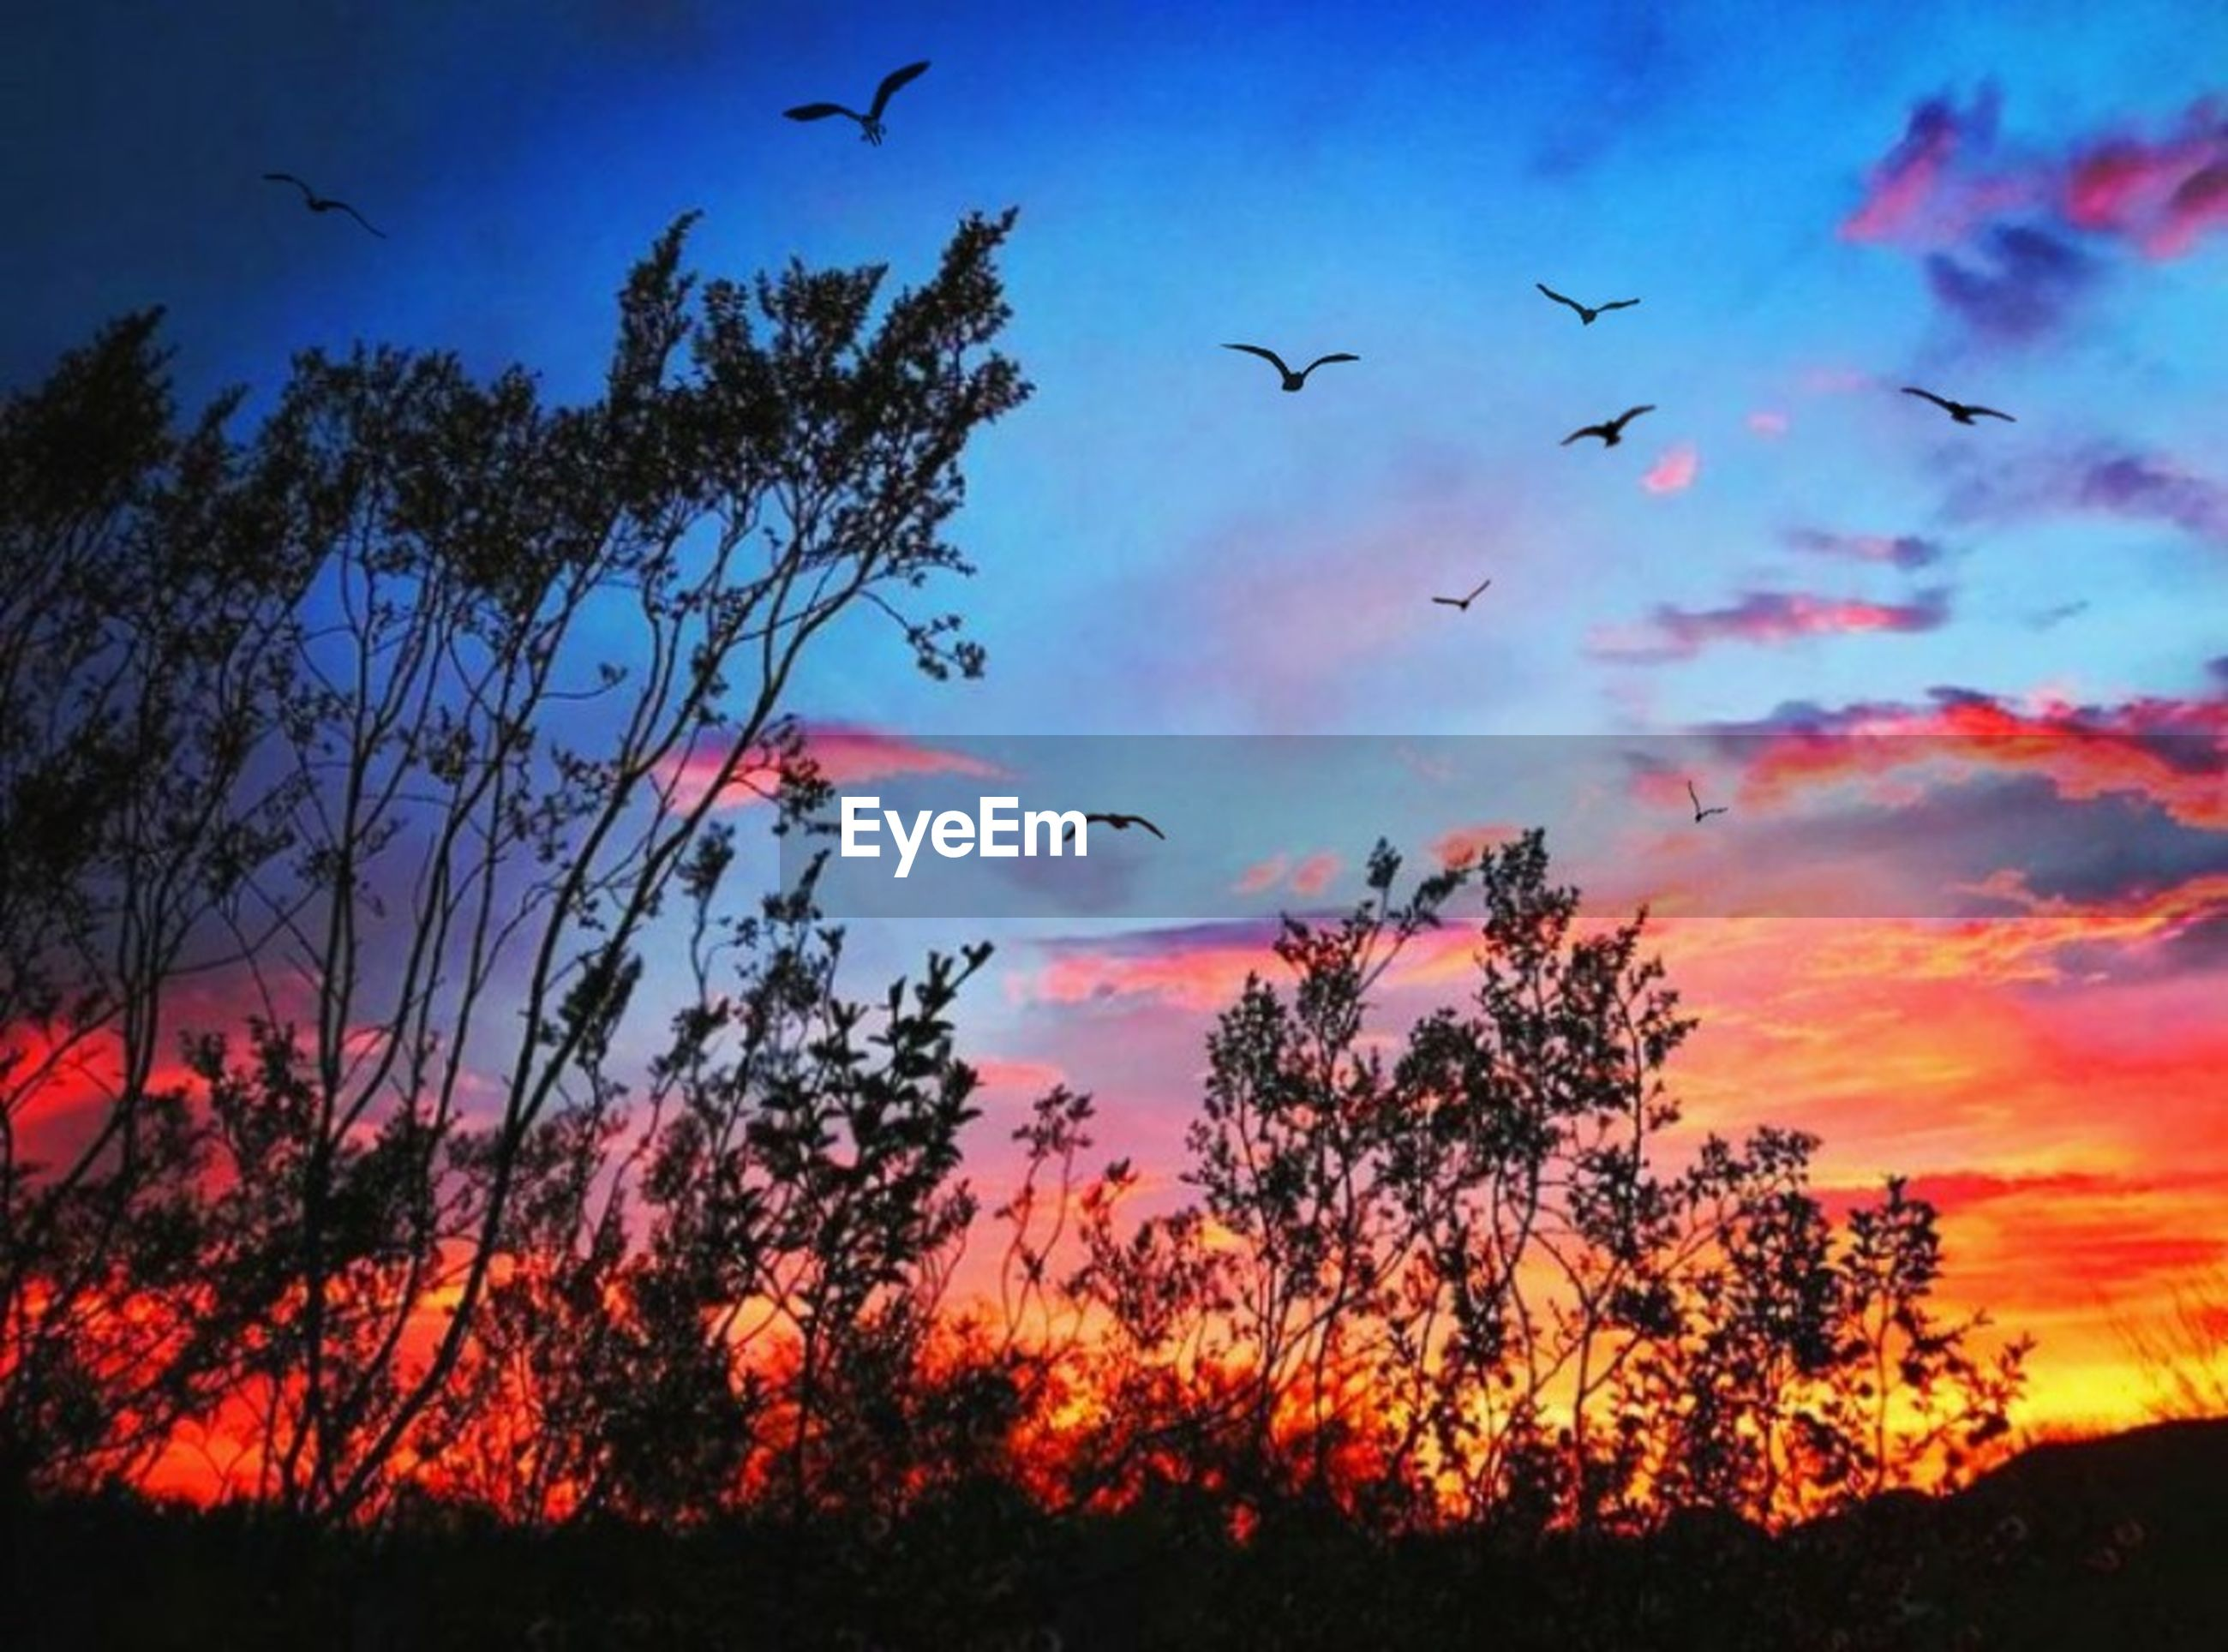 sky, flying, animal themes, vertebrate, animal wildlife, animals in the wild, cloud - sky, animal, bird, tree, sunset, plant, beauty in nature, nature, group of animals, large group of animals, scenics - nature, no people, silhouette, orange color, flock of birds, outdoors